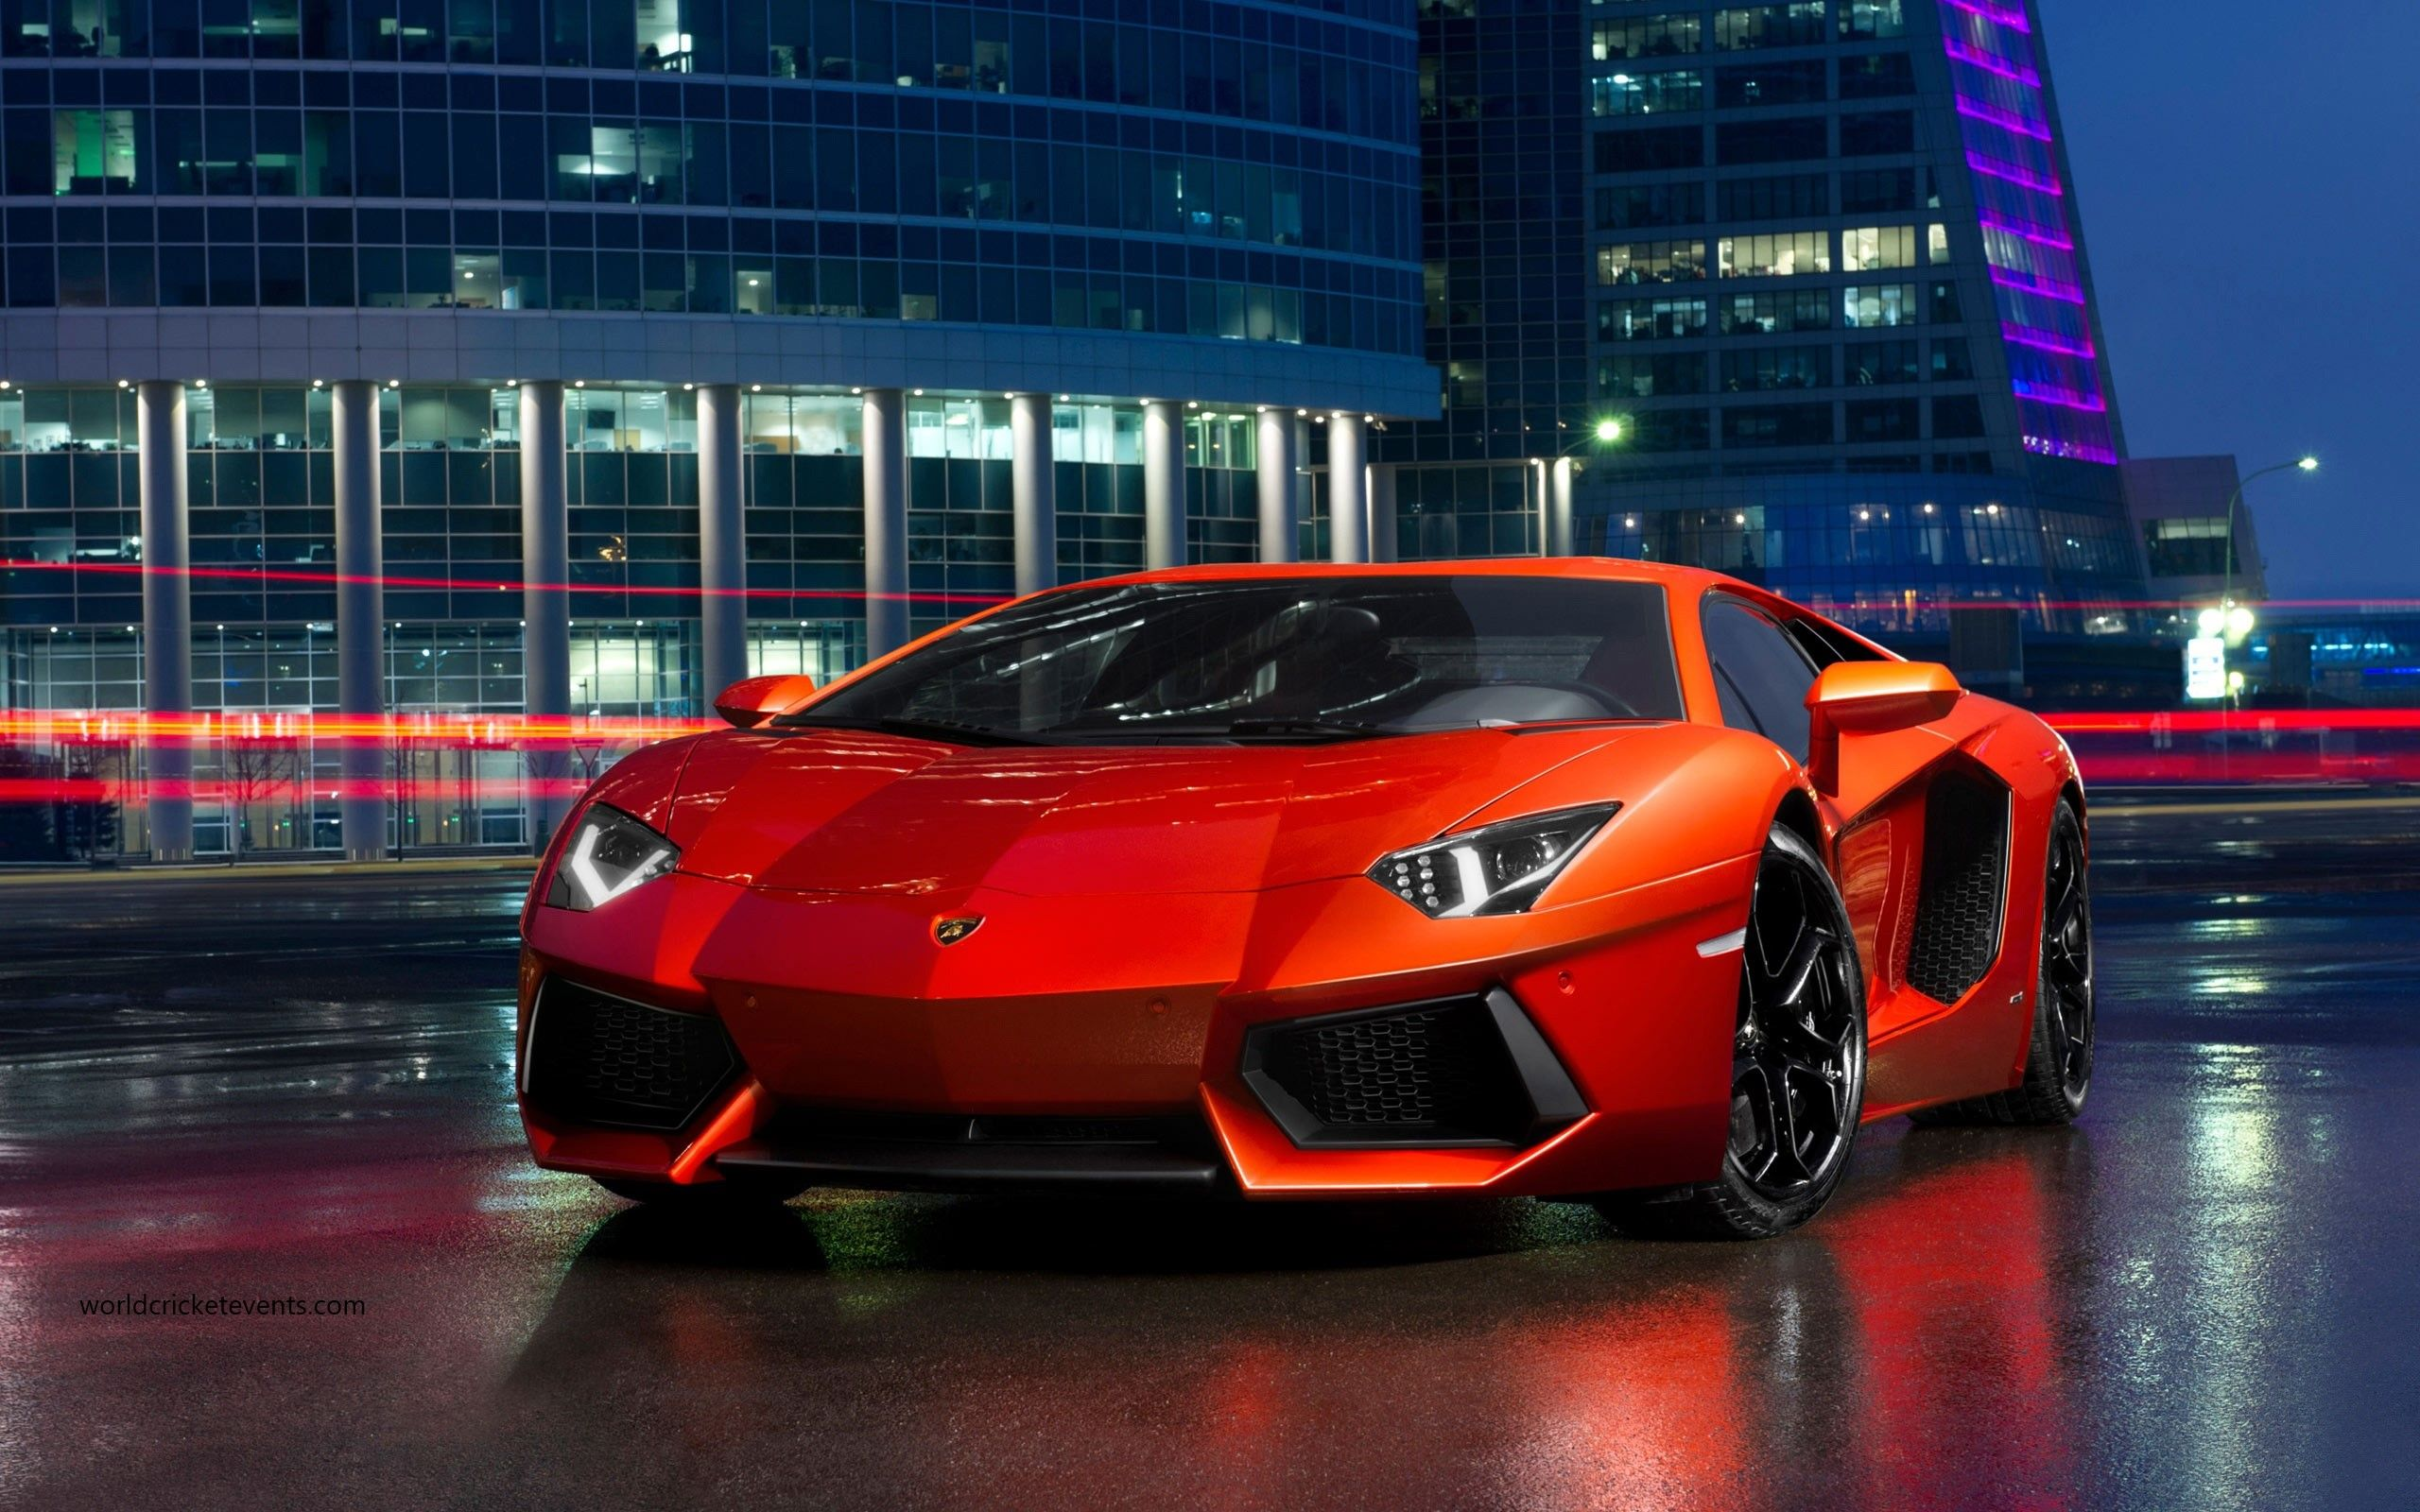 Lamborghini Hd Wallpapers For Laptop Worldcricketevents Com Lamborghini Hd